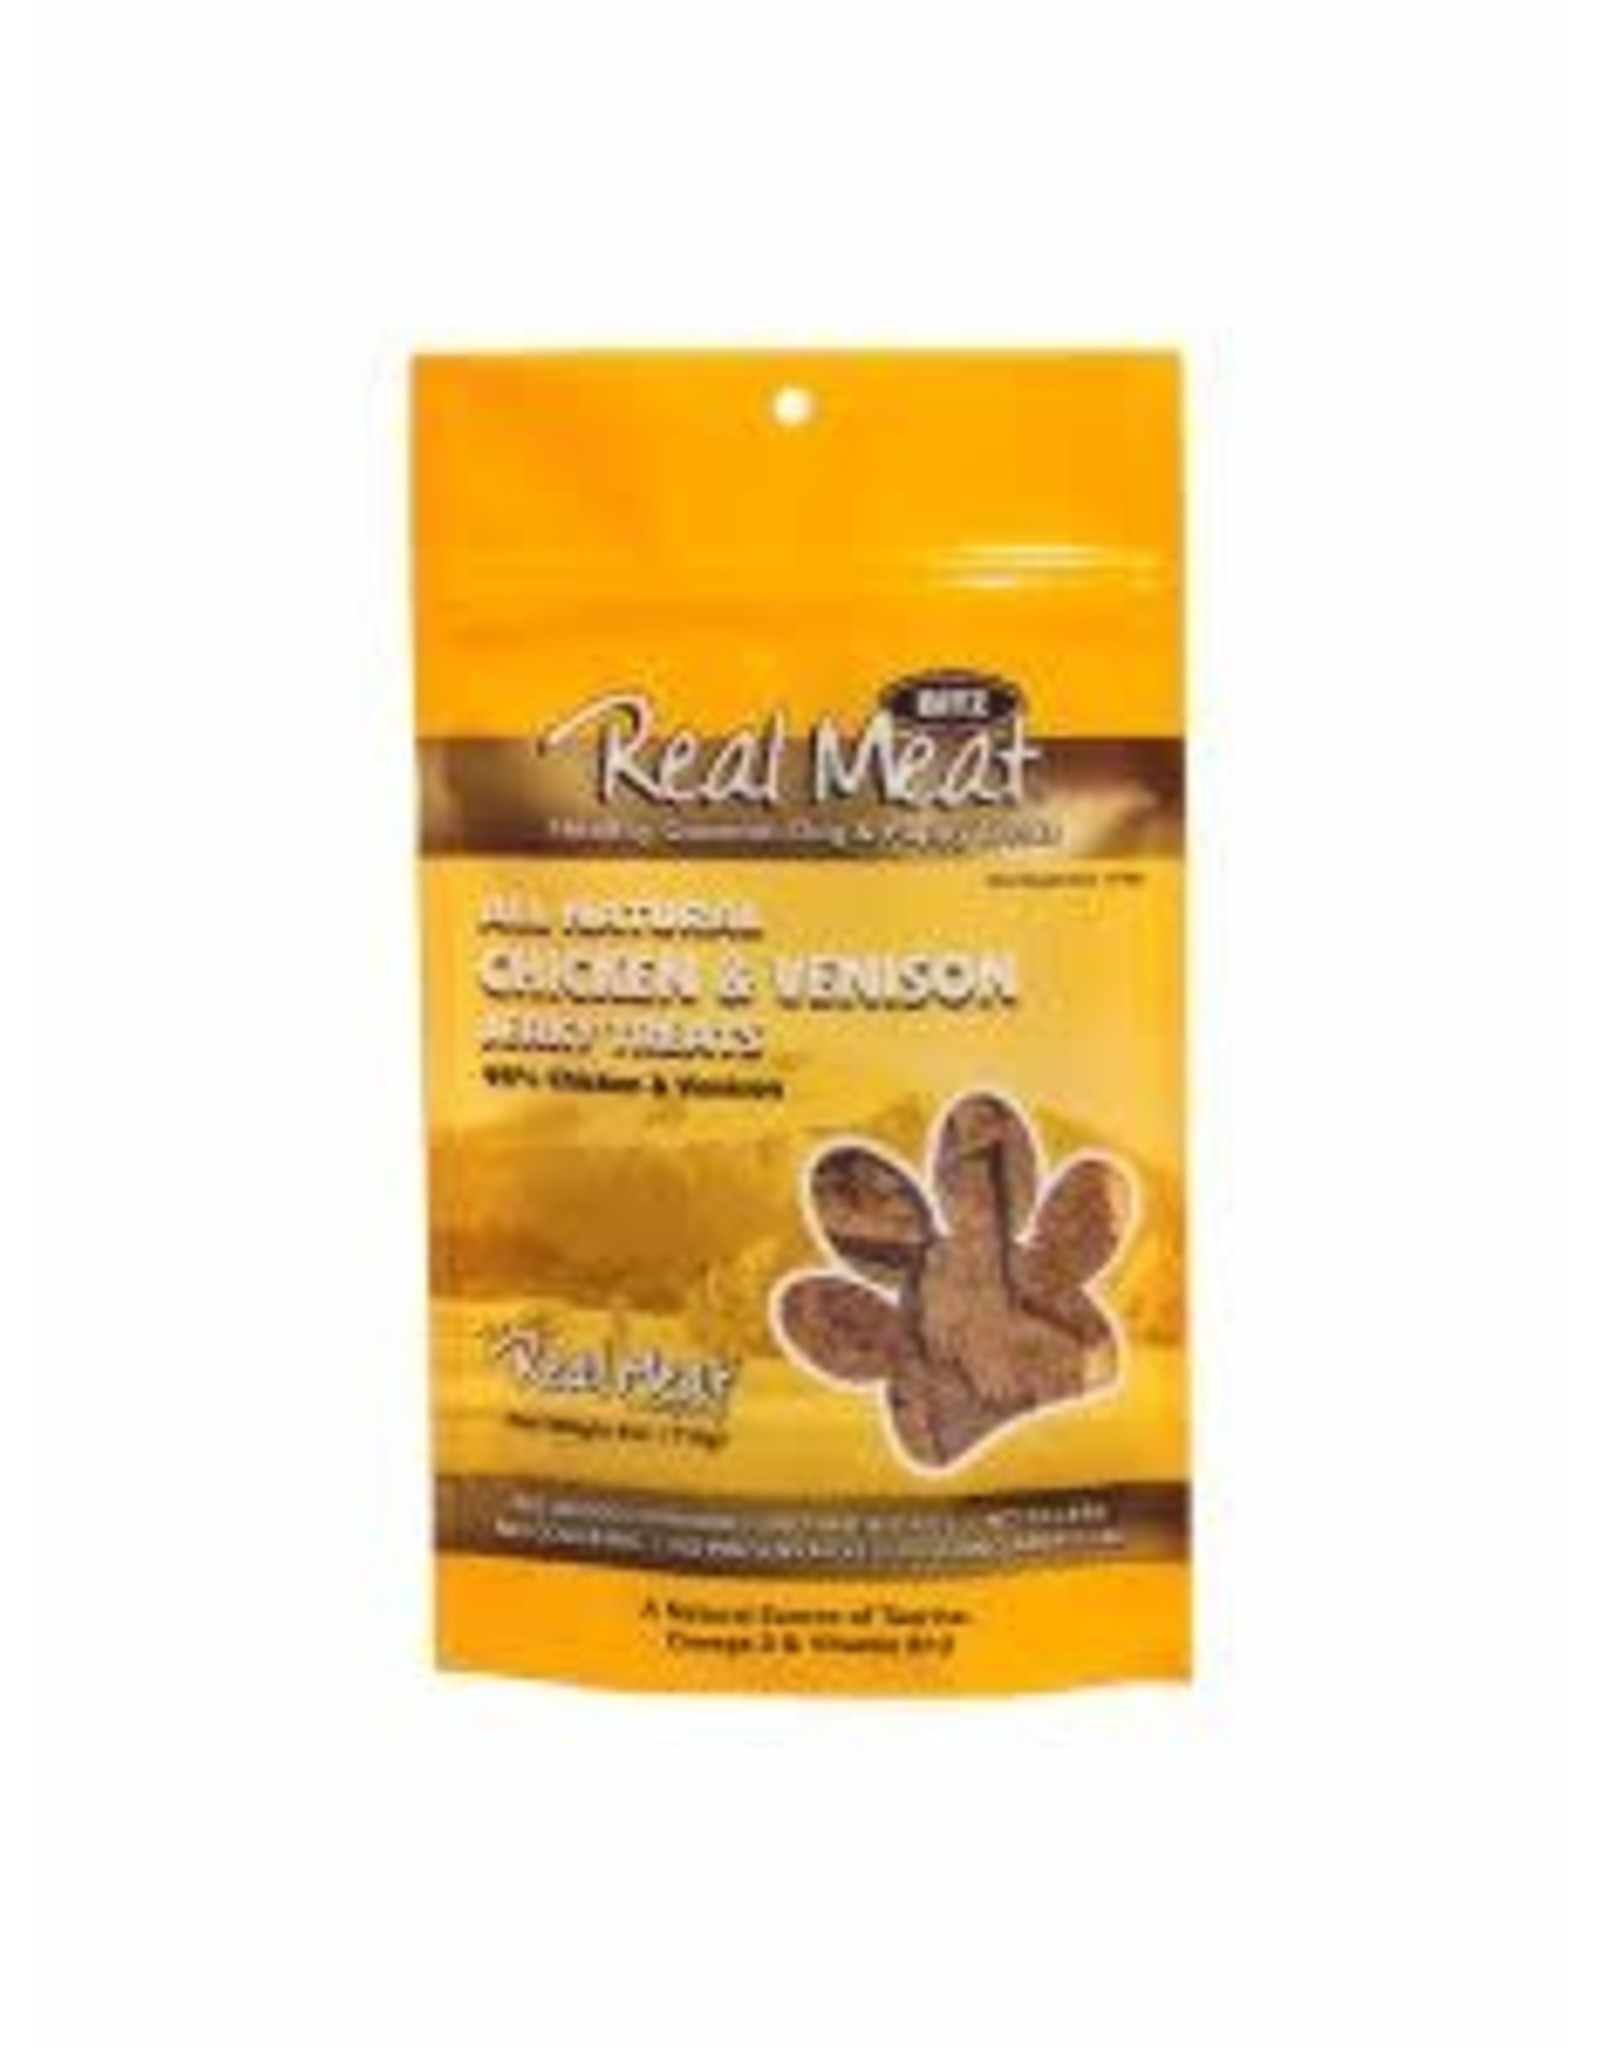 The Real Meat Company Real Meat Jerky Treats: Chicken & Venison